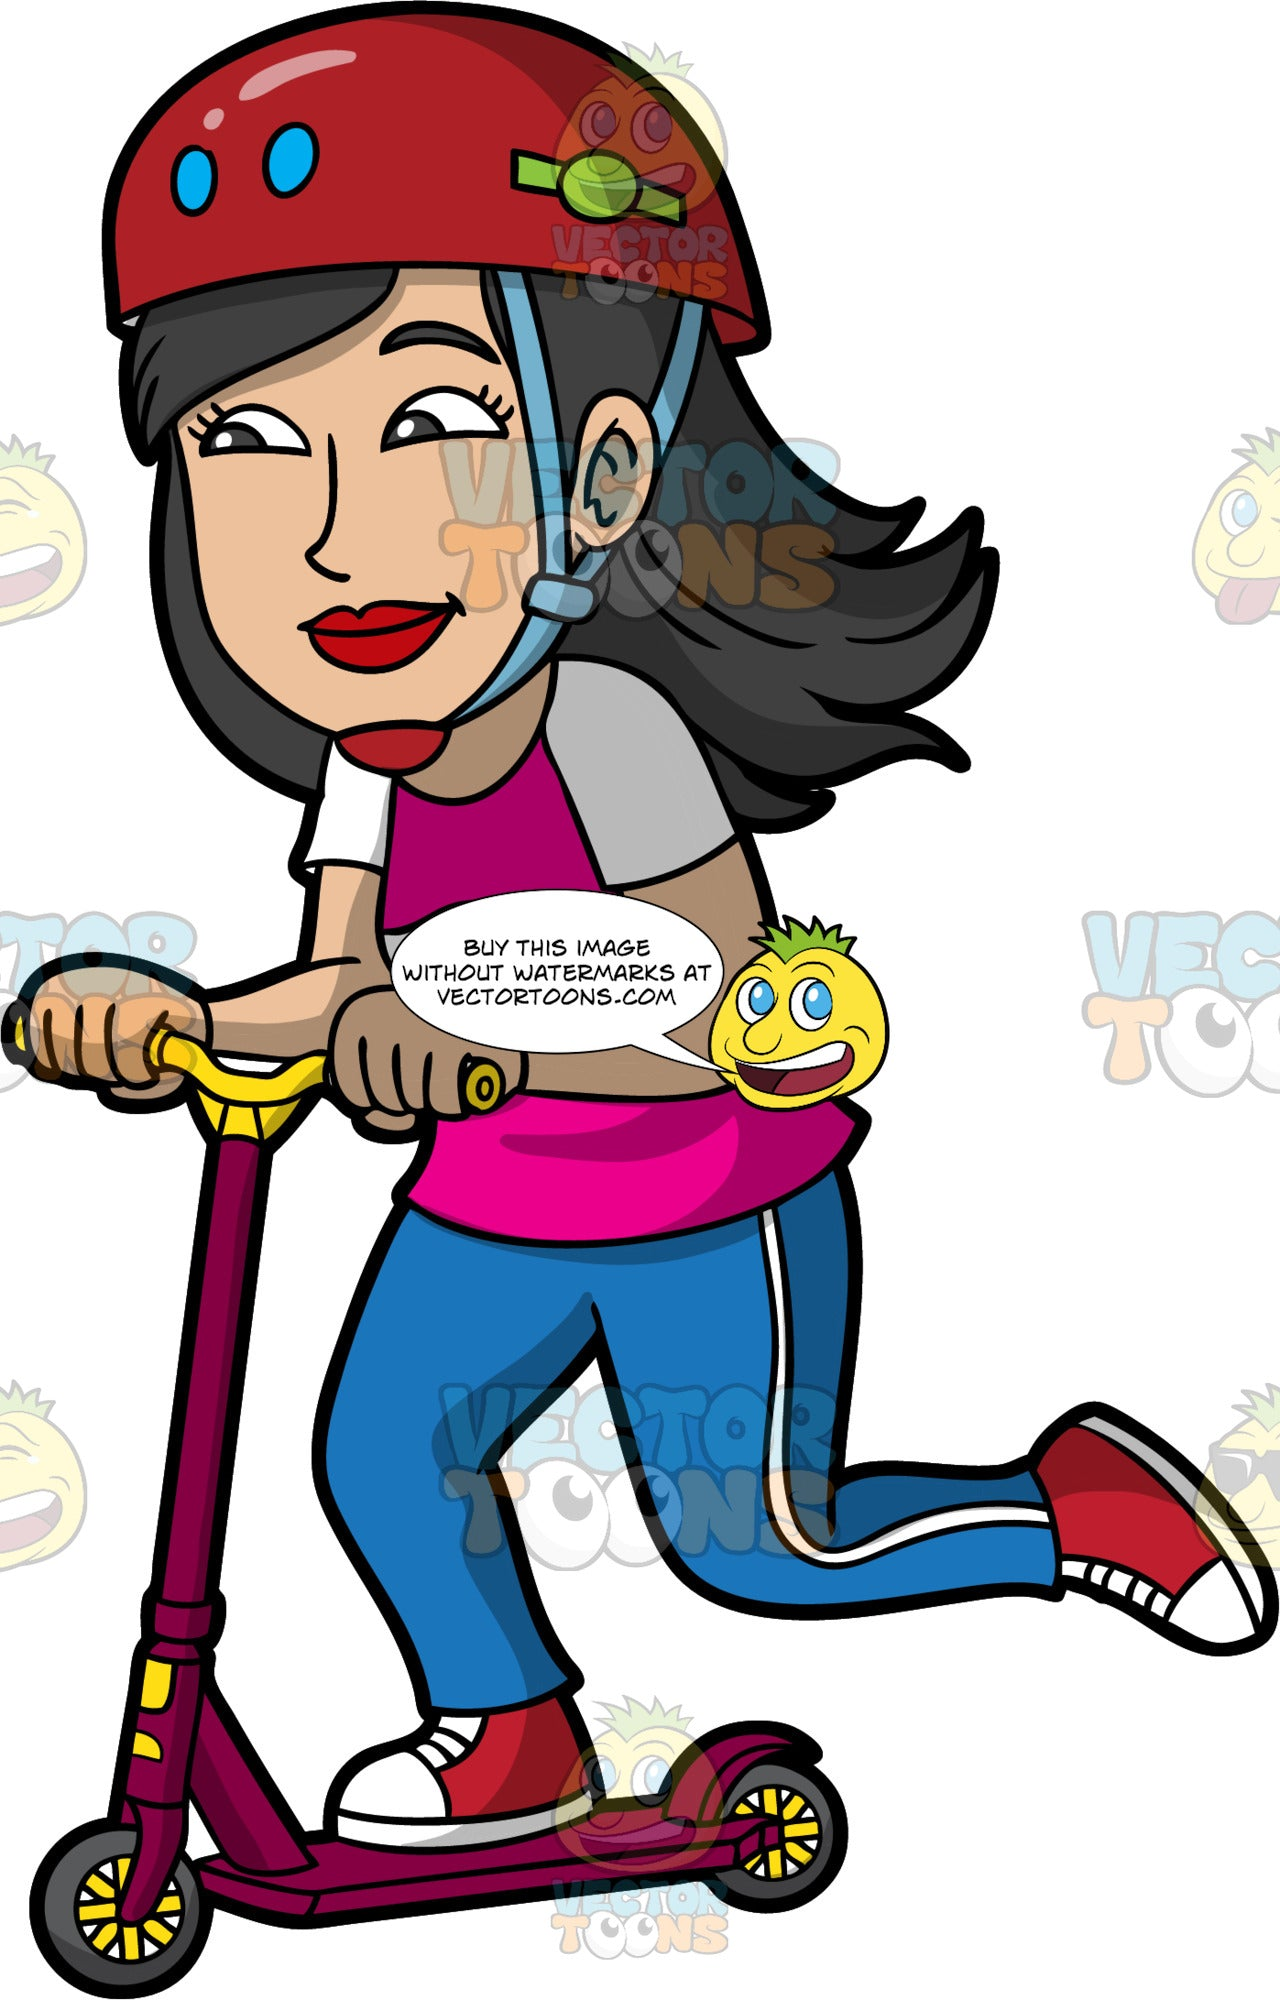 A Happy Woman Riding A Scooter. A woman with black hair, wearing a red helmet with blue and green accent, blue with red chin strap, pink with white shirt, blue pants with white side stripe, red with white sneakers, smiles while riding a violet with yellow scooter with gray wheels